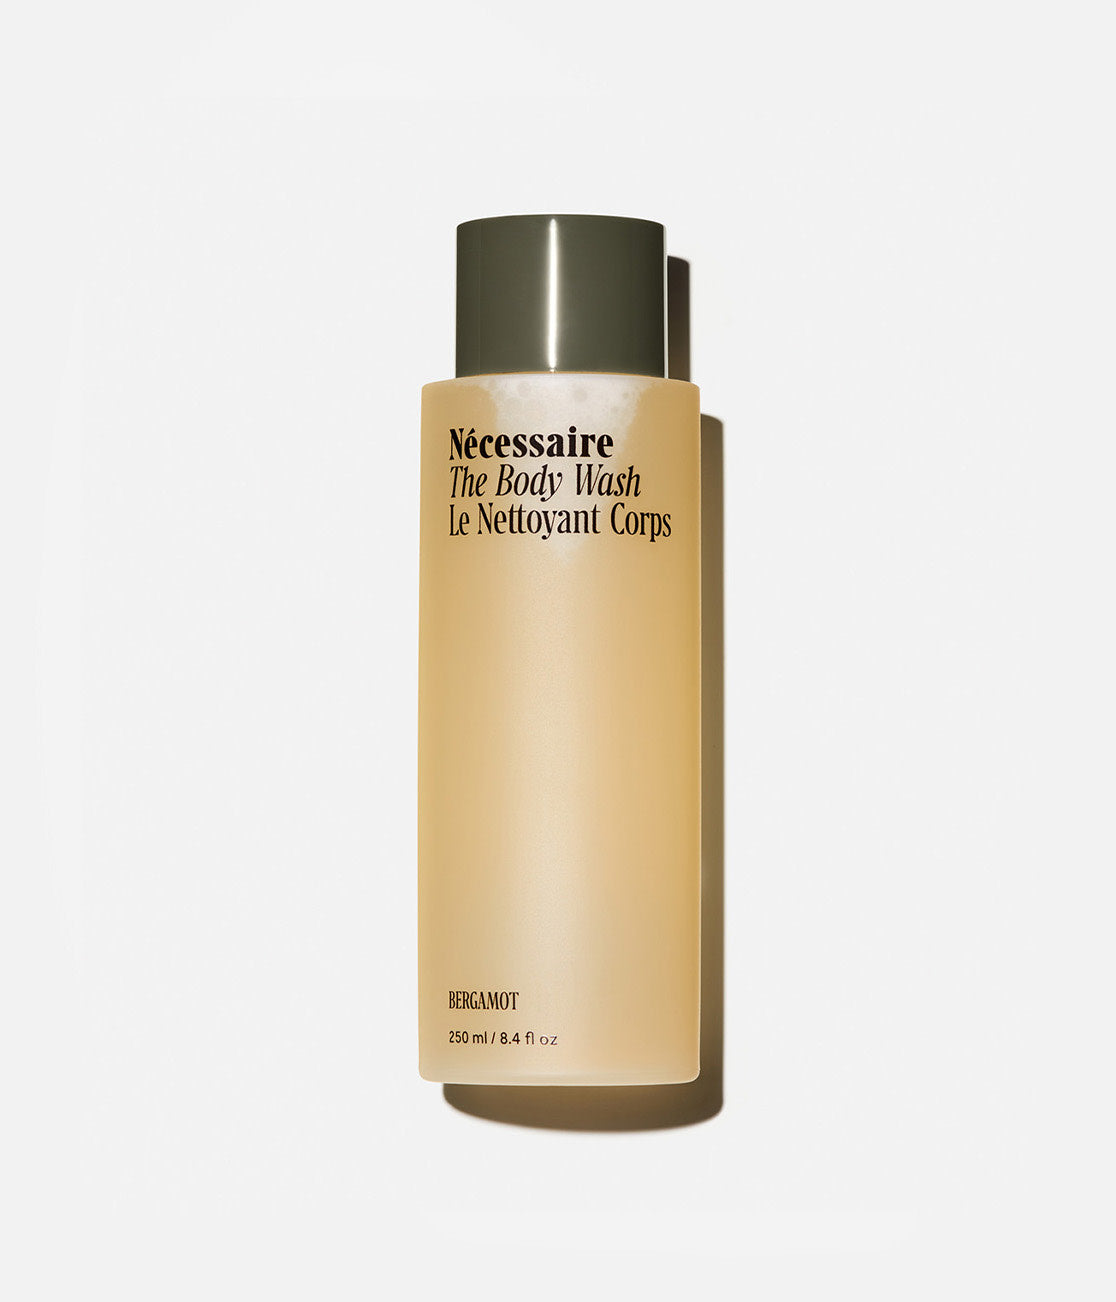 Nécessaire The Body Wash (Bergamot). Worldwide Free Shipping - Singapore, Malaysia, Brunei, Philippines, Indonesia, India, Australia, Hong Kong, USA, UAE, Europe!